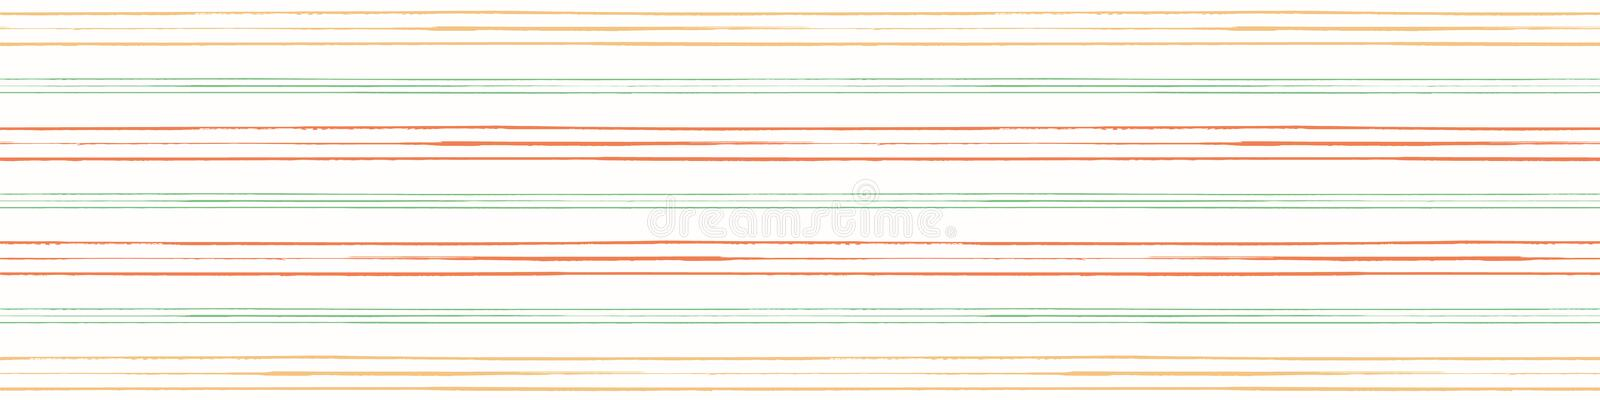 Vector orange, green and yellow grunge striped border. Seamless pattern on cream white background. Perfect for textiles royalty free illustration